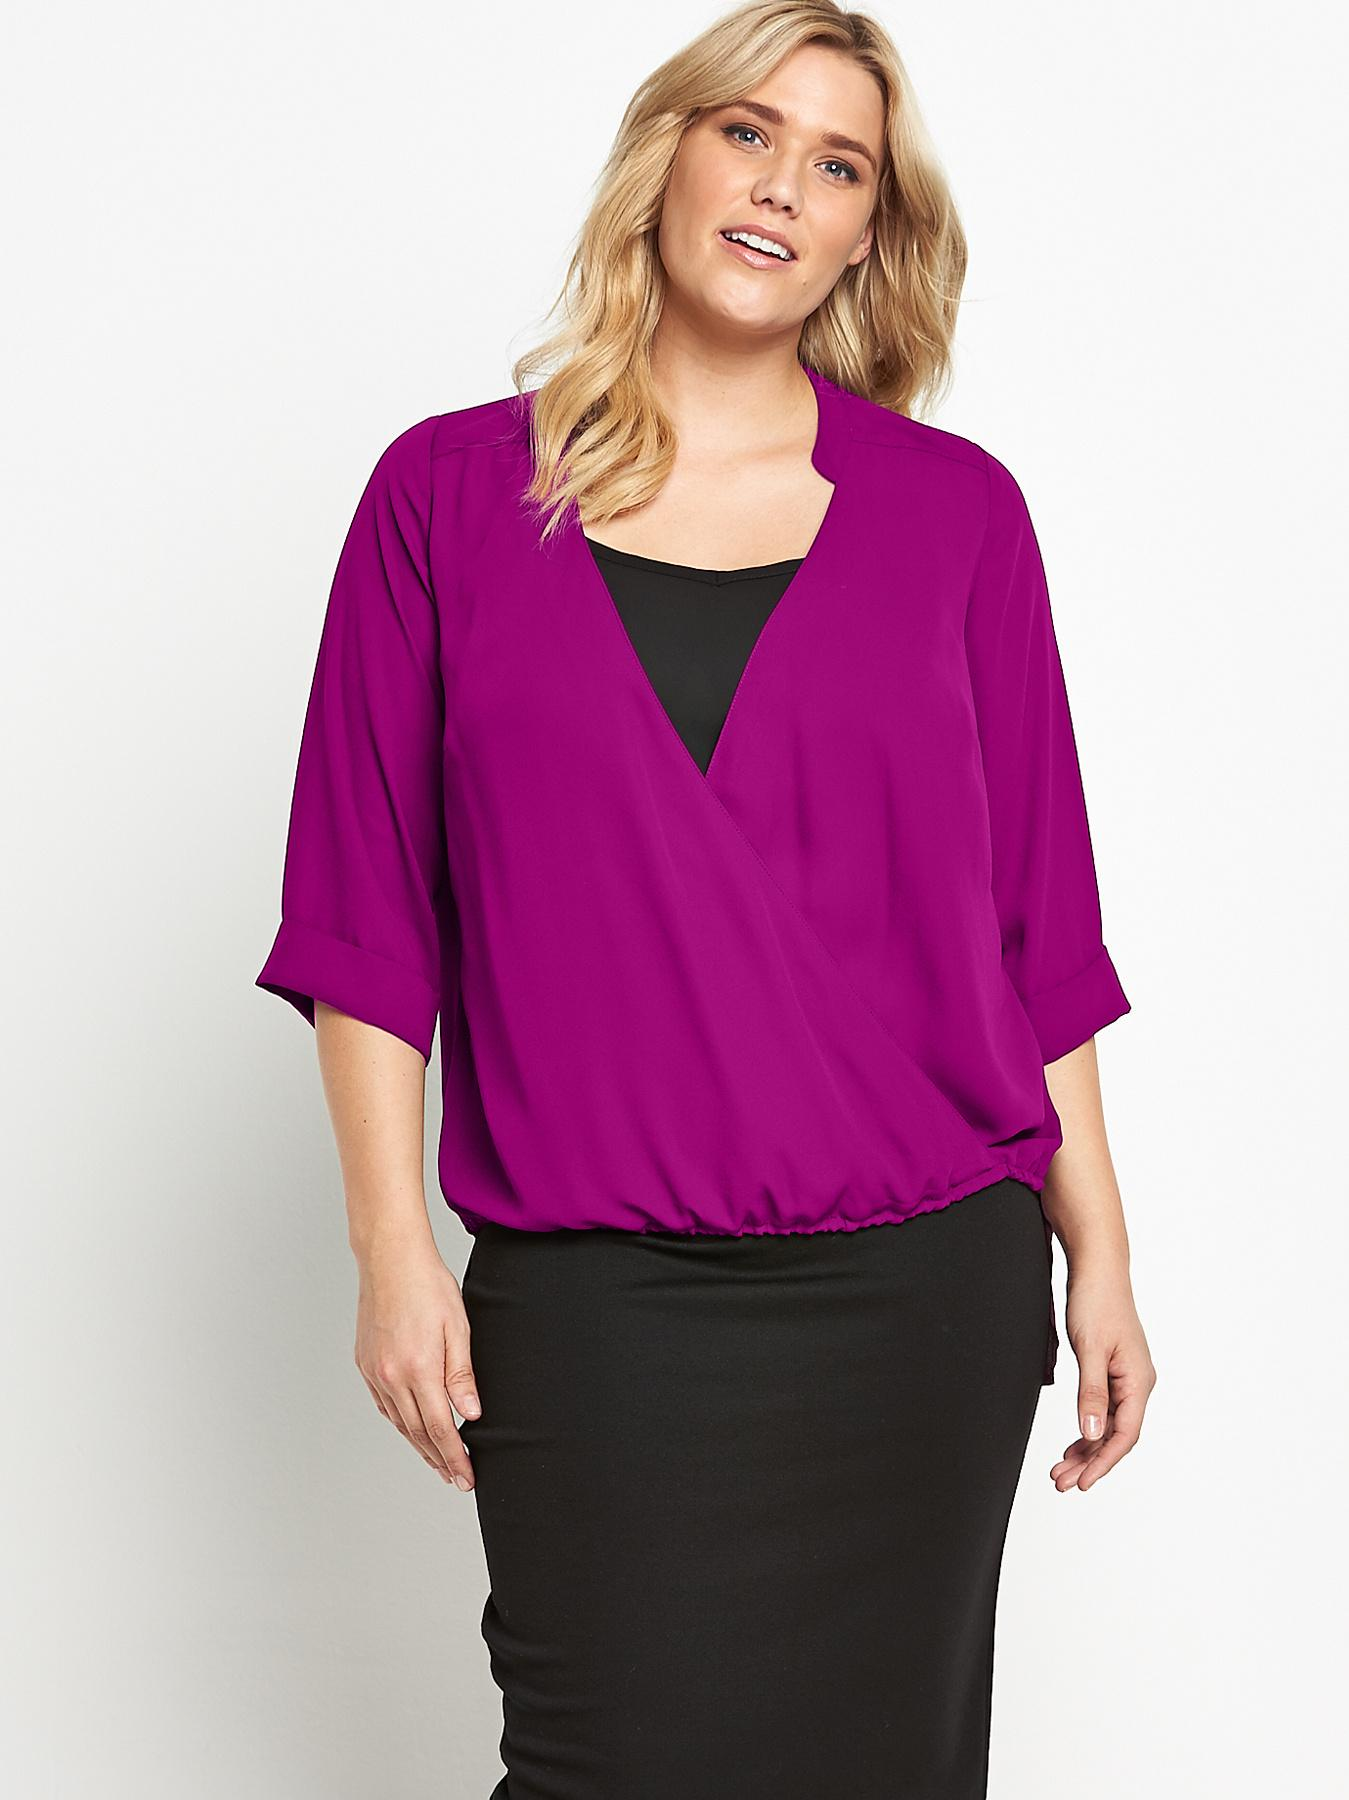 Plus Size Formal Separates